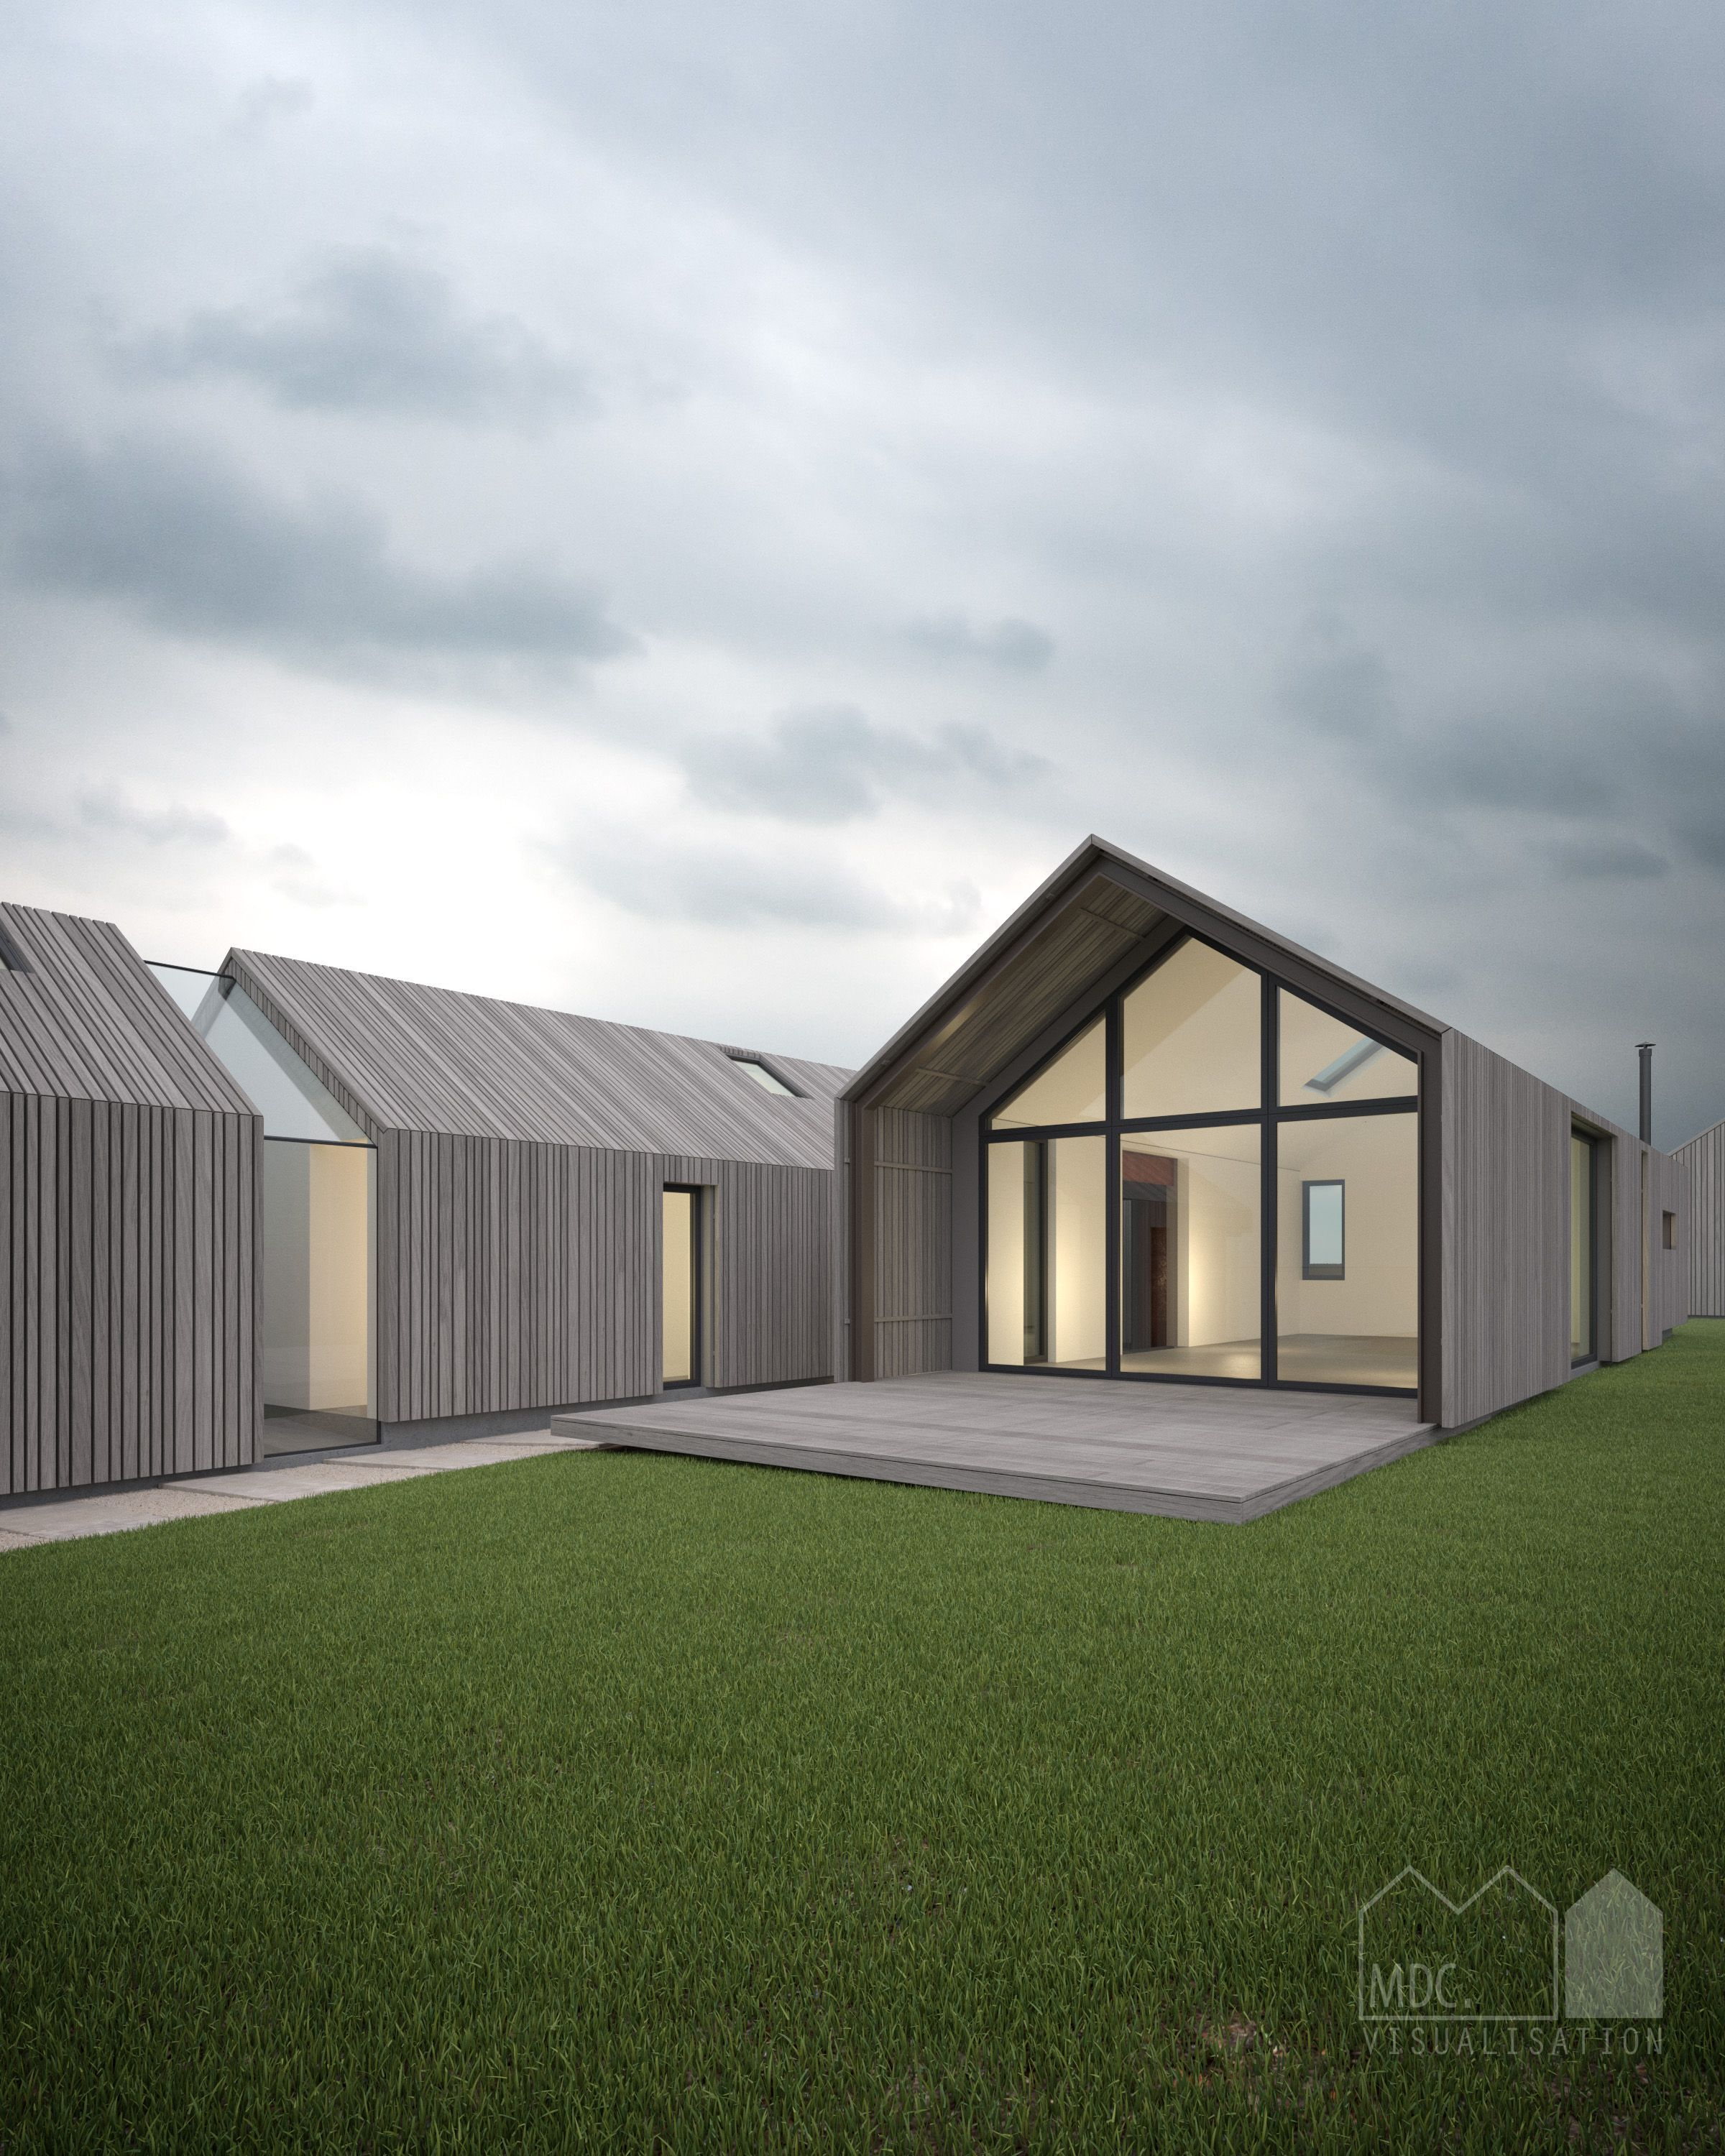 Weathered Cedar Cladding On Contemporary Barn With Glass Link And Glazed Gable End With Overhang In 2020 Gable House Contemporary Barn Roof Architecture